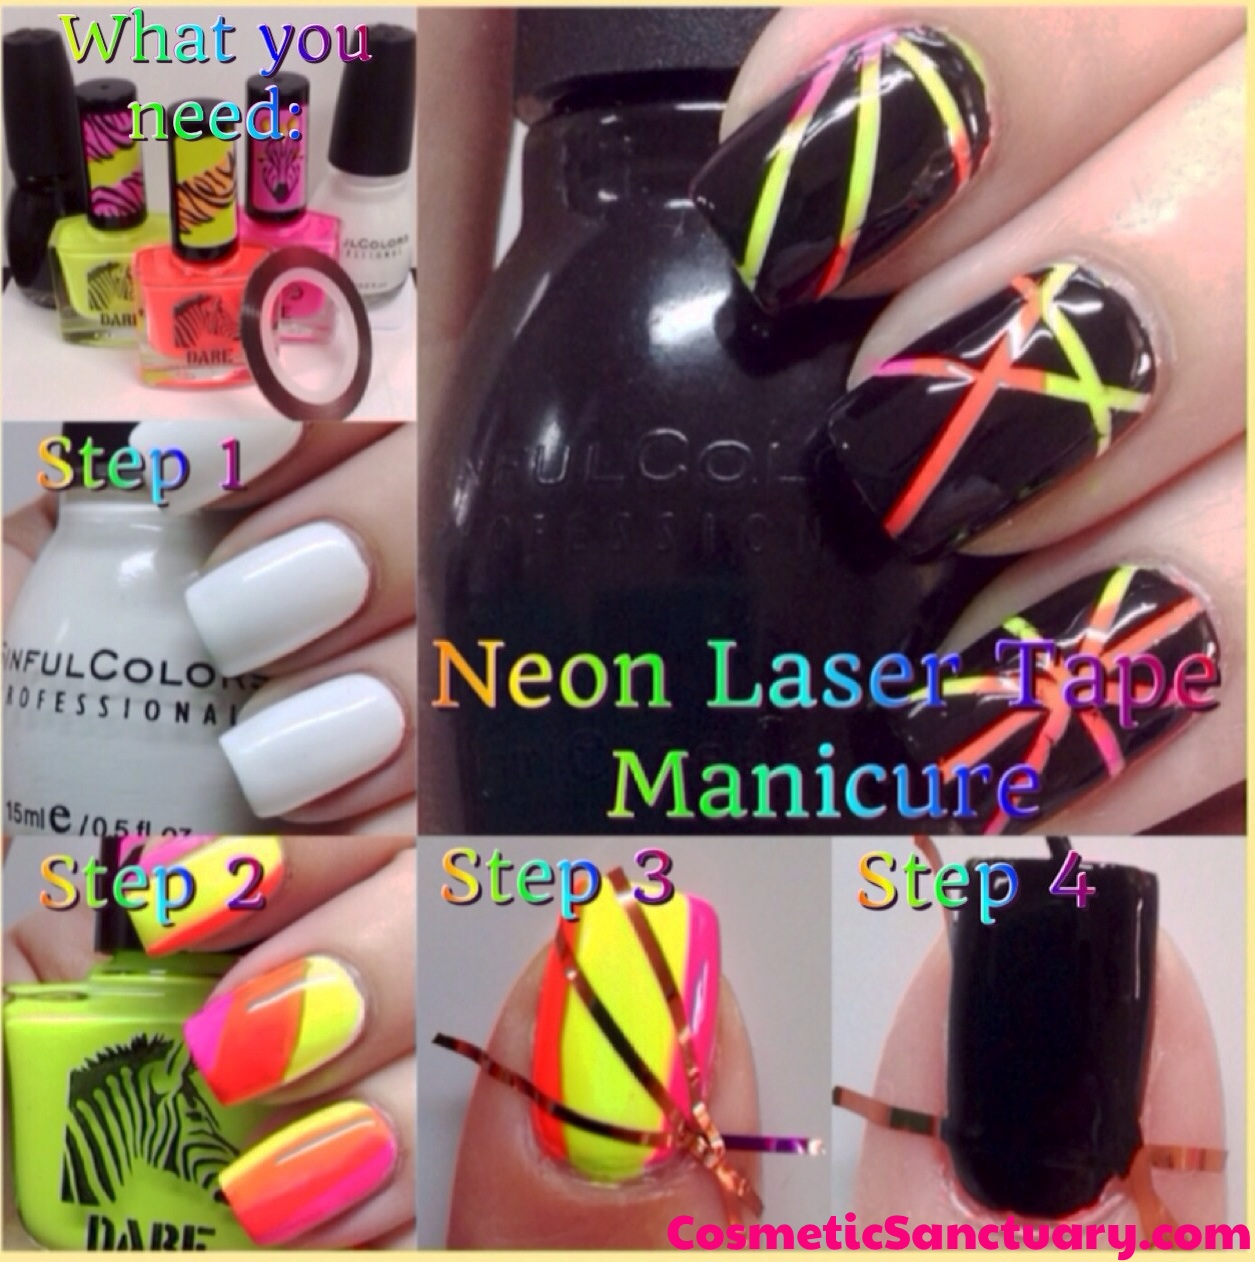 Nail Striping Tape Walmart: Neon Laser Tape Manicure Tutorial